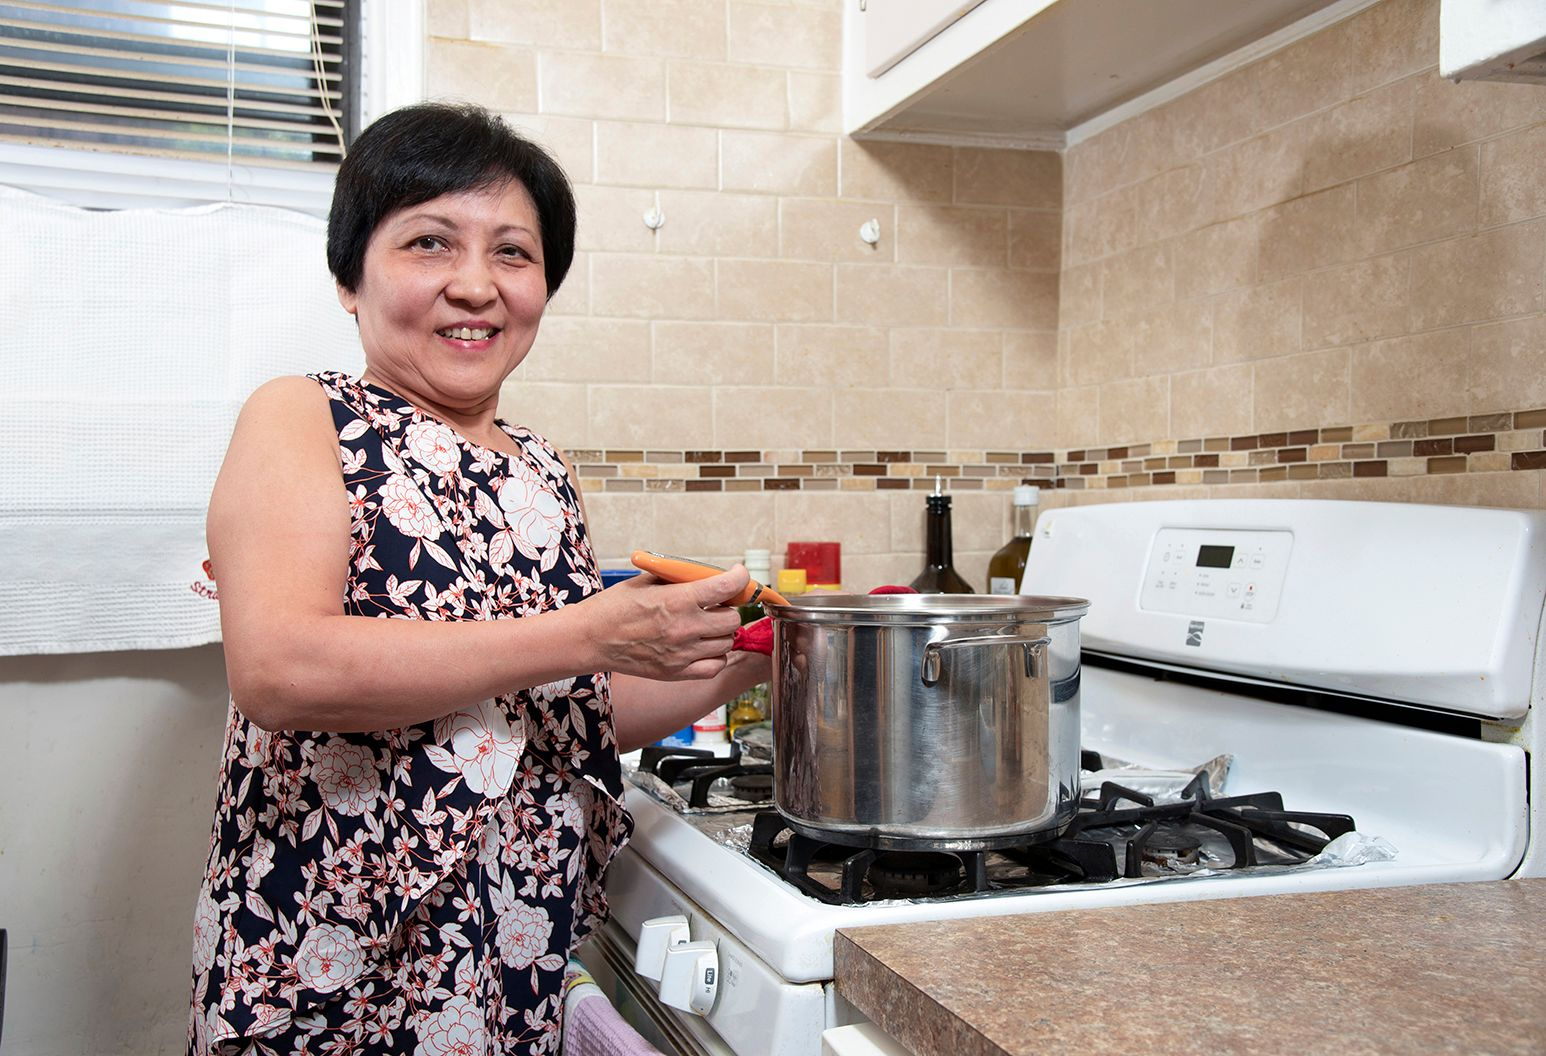 Chen Lie, a patient participating in a robotic stroke rehab clinical trial at the Feinstein Institute, cooking in her kitchen.